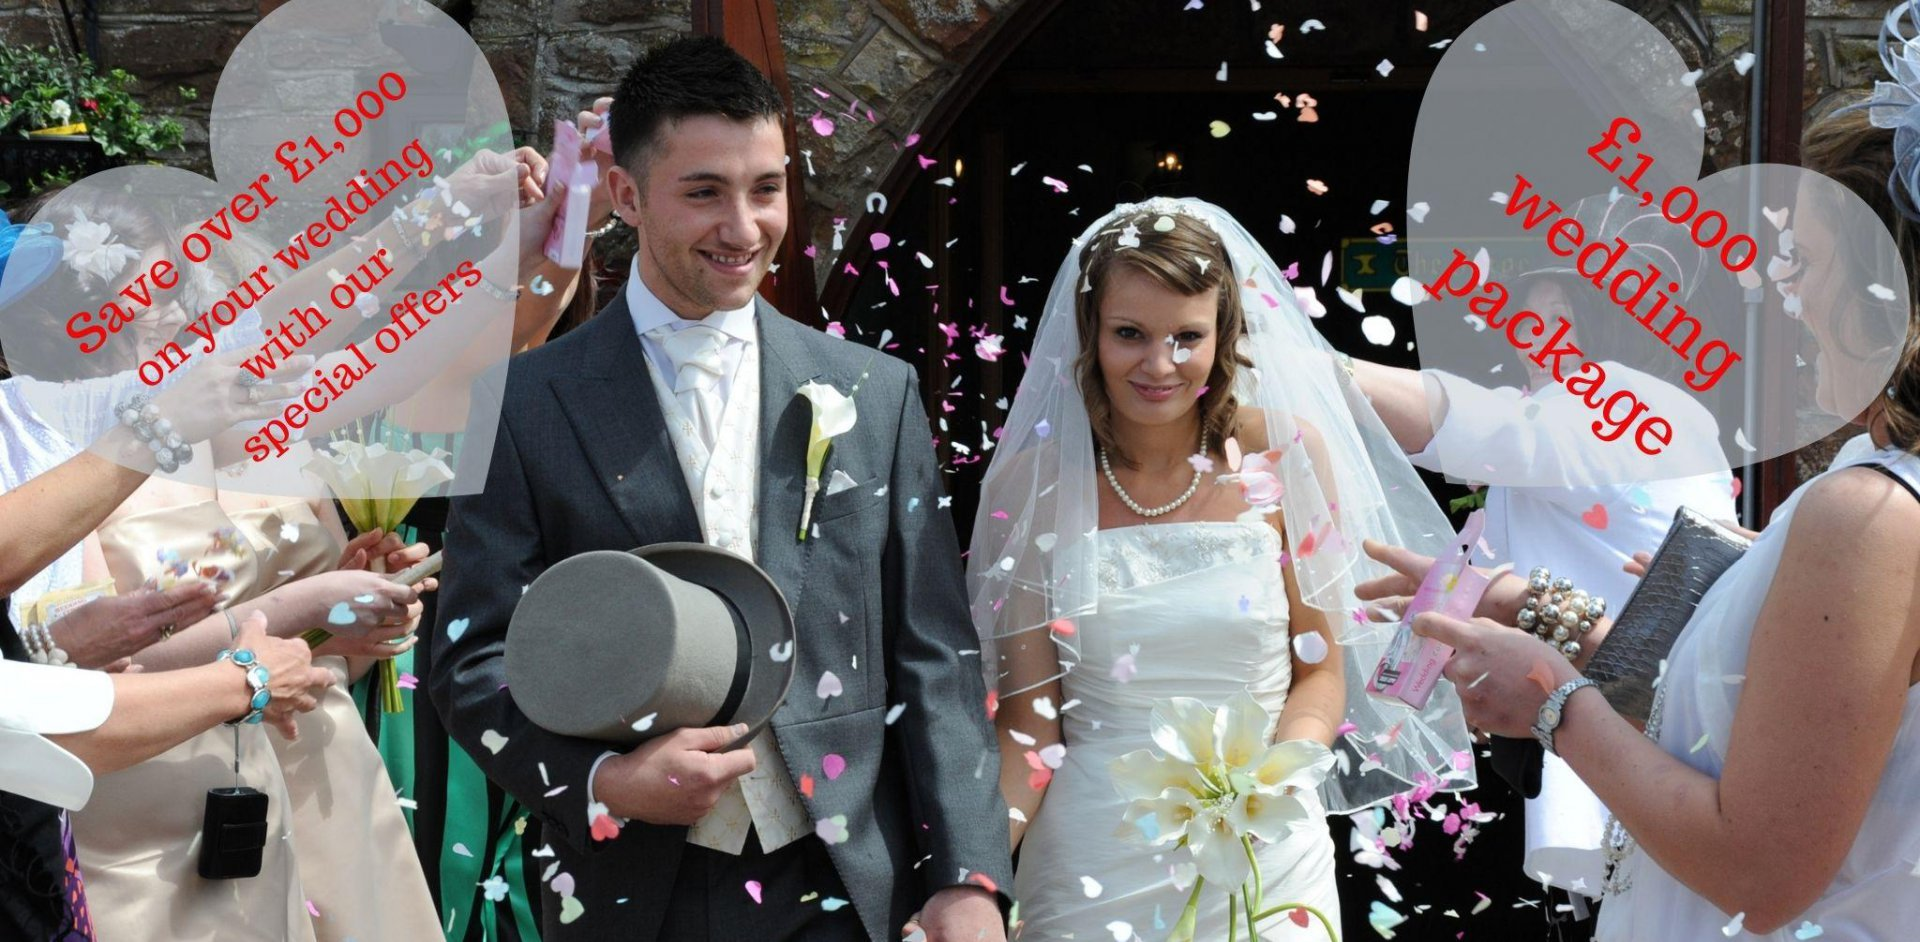 Weddings at The Mill Forge Hotel near Gretna Green in Scotland